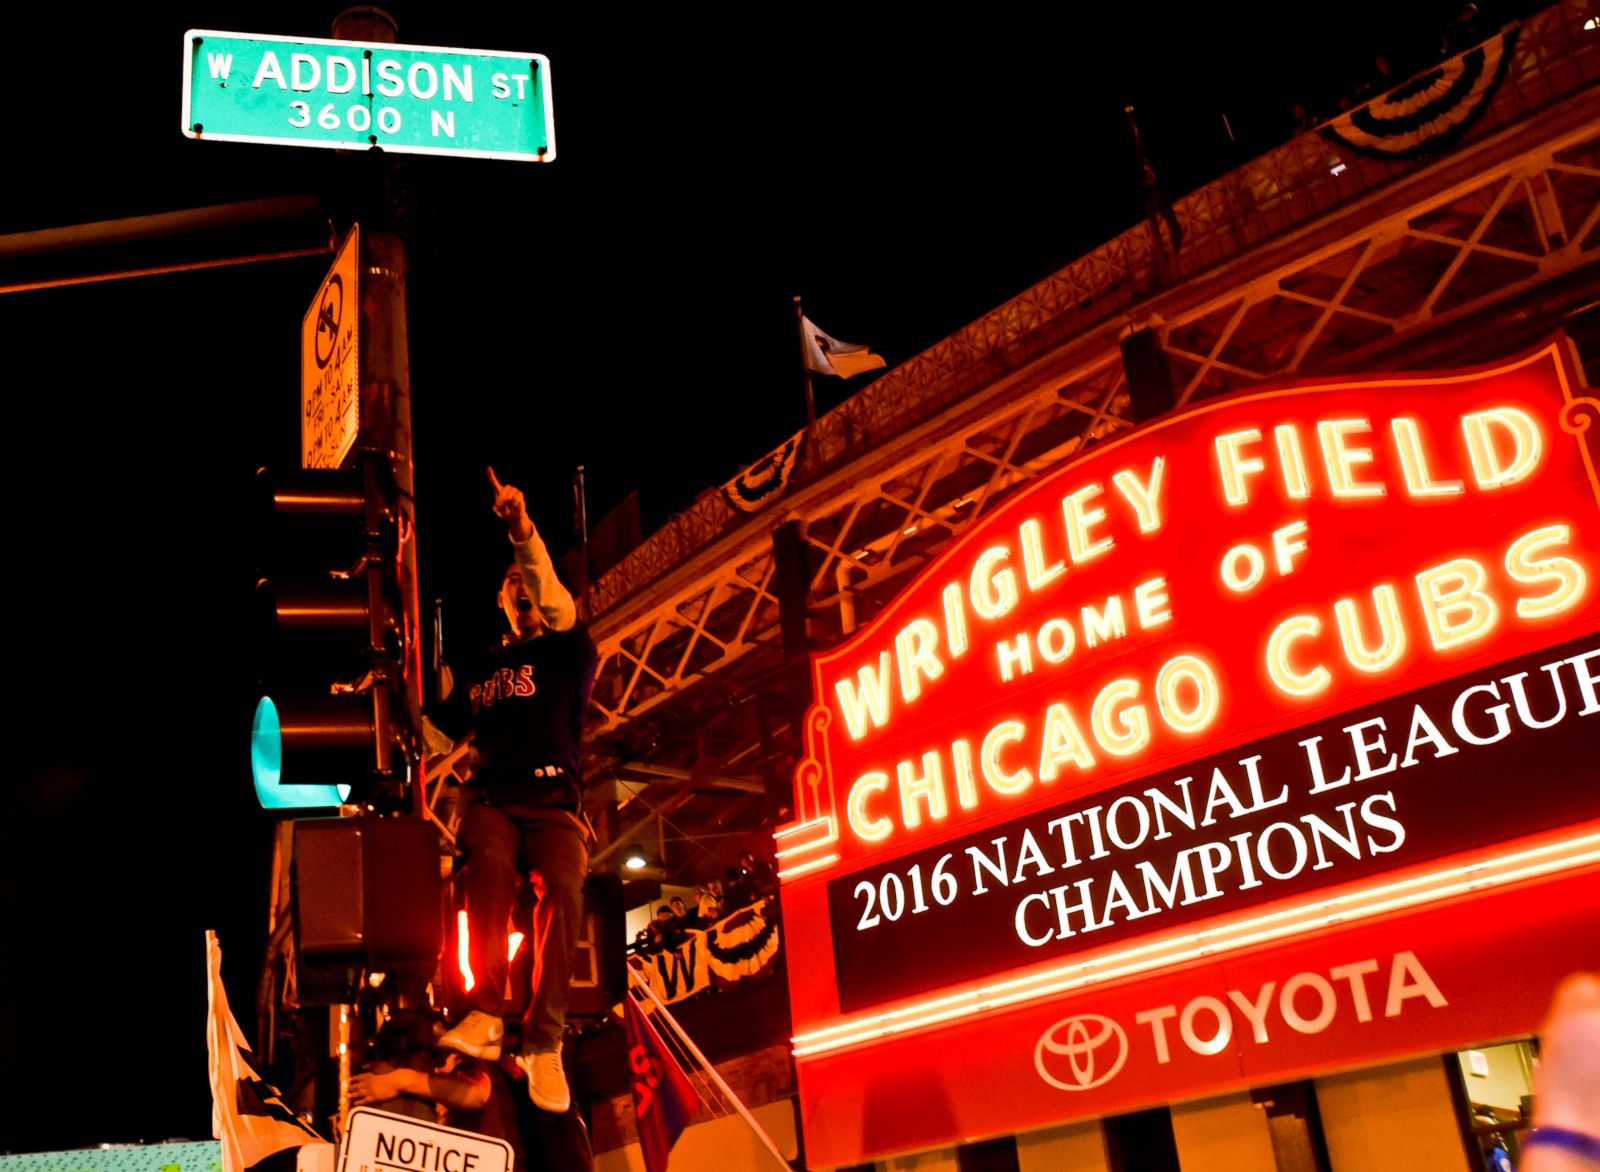 VIDEO: Chicago Cubs Try And Erase Over 100 Years Of Misery